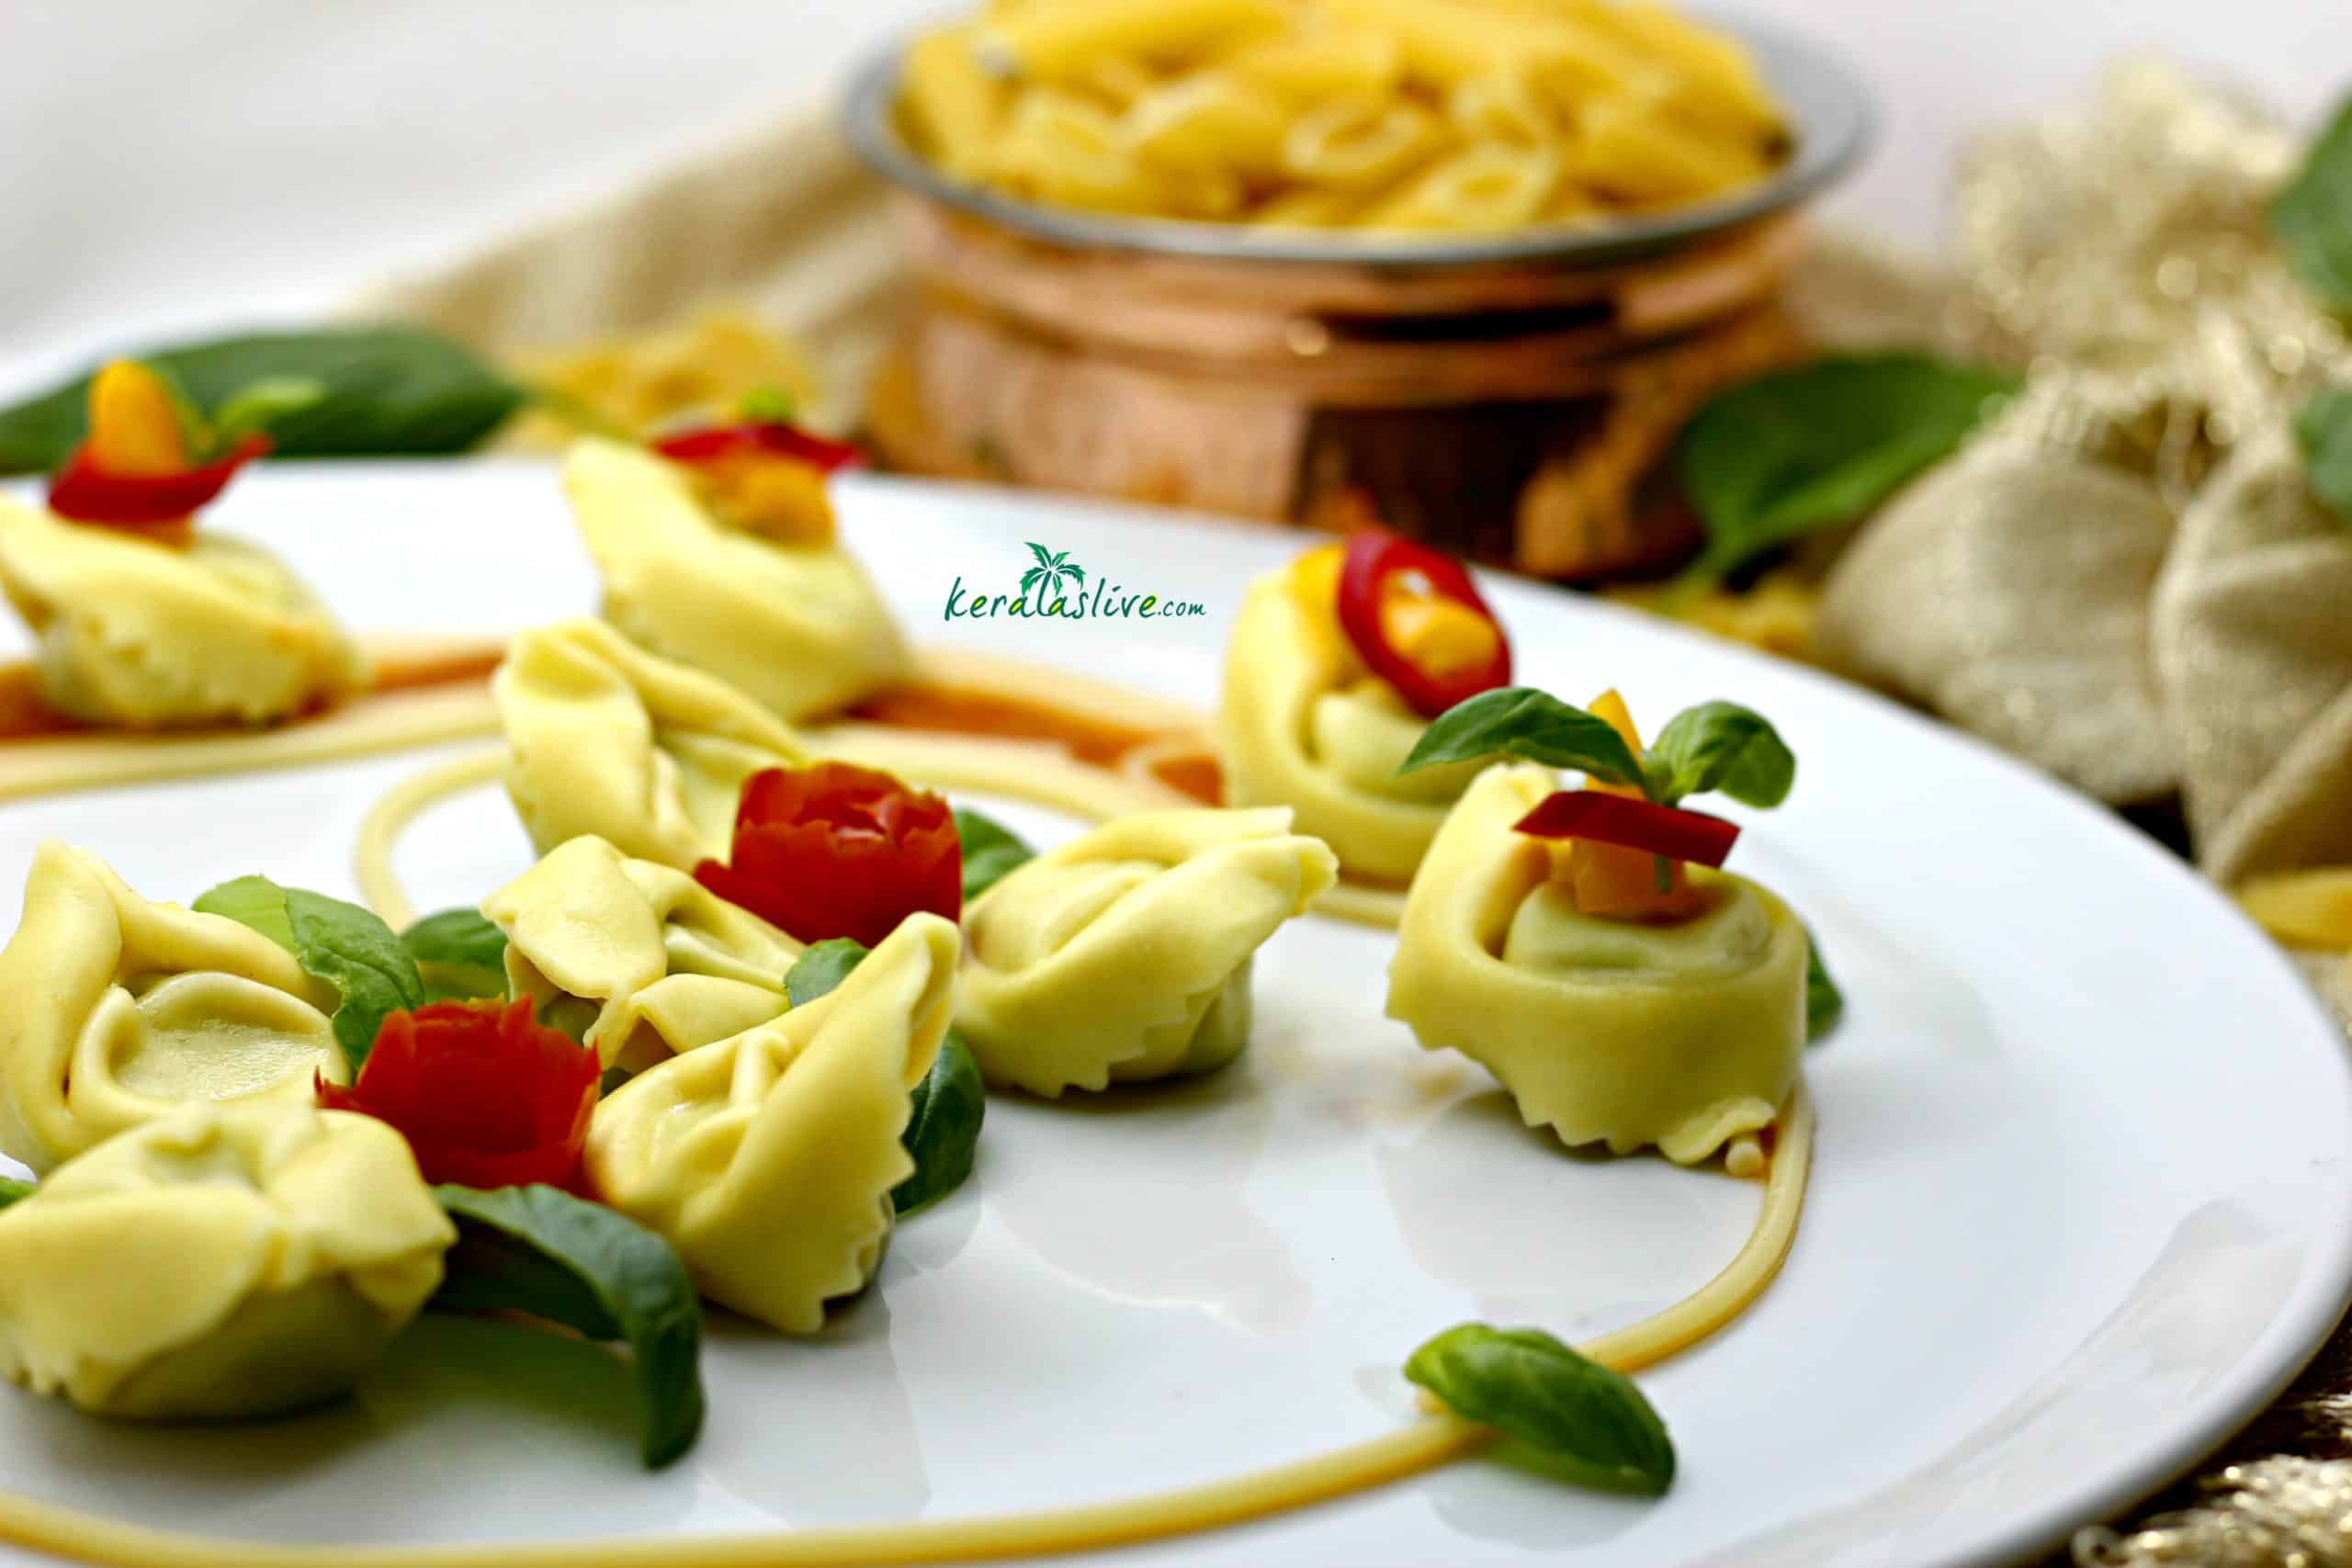 Ricotta spinach tortellini with Makhani sauce